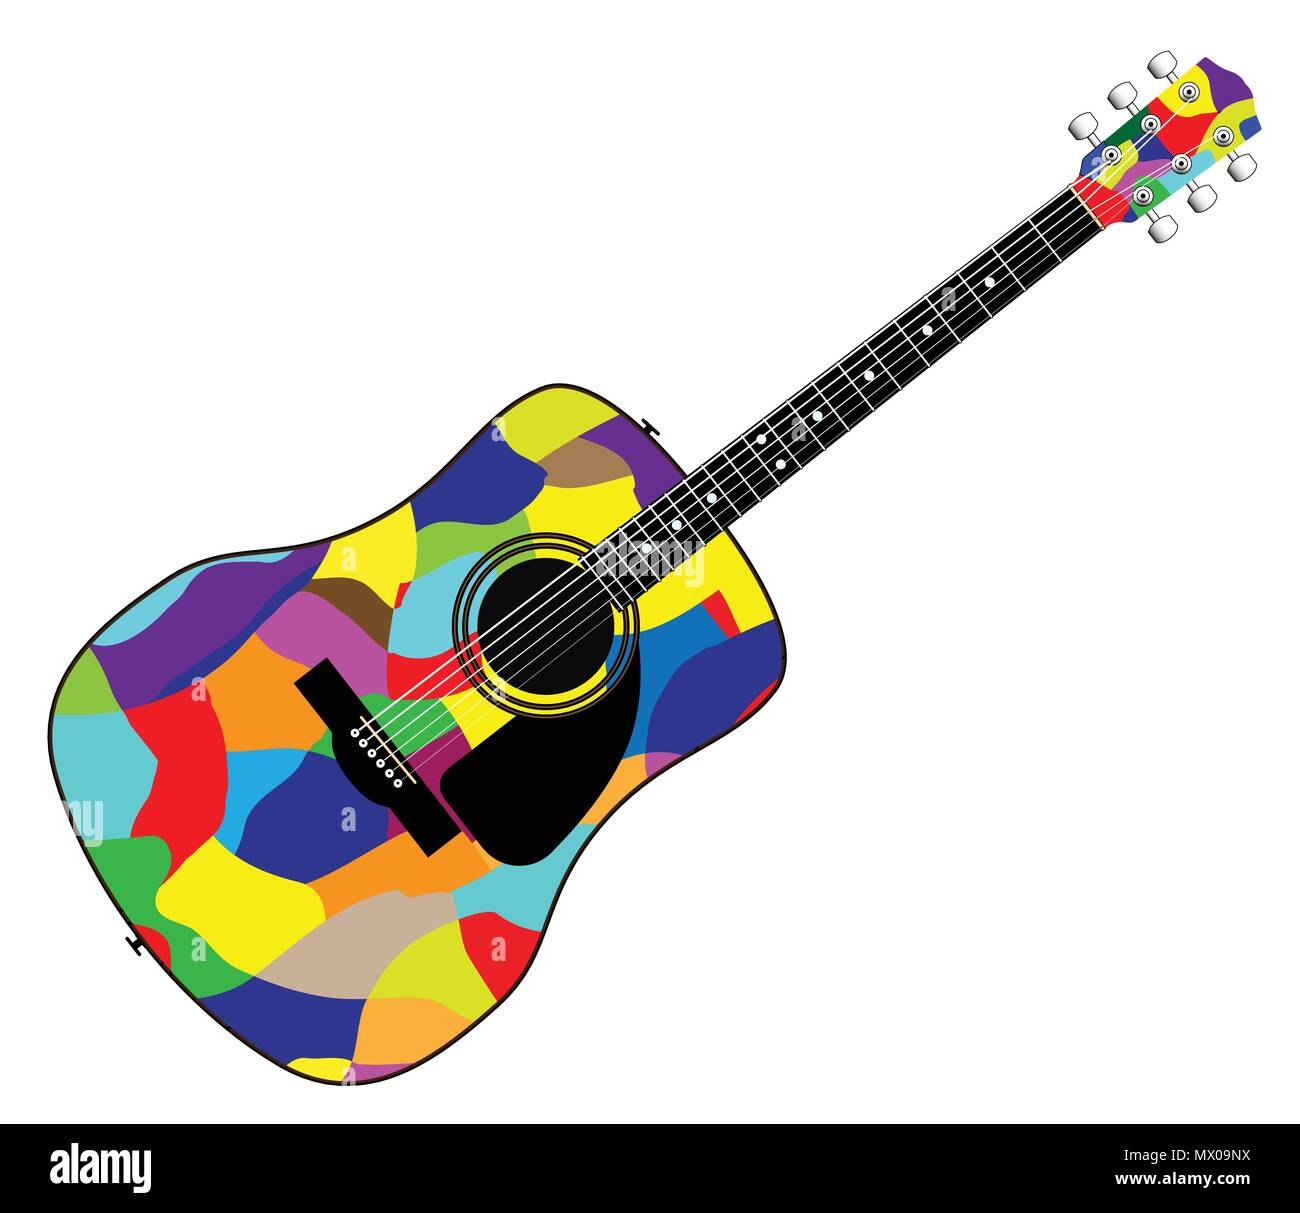 A Typical Acoustic Guitar Isolated Over A White Background Stock